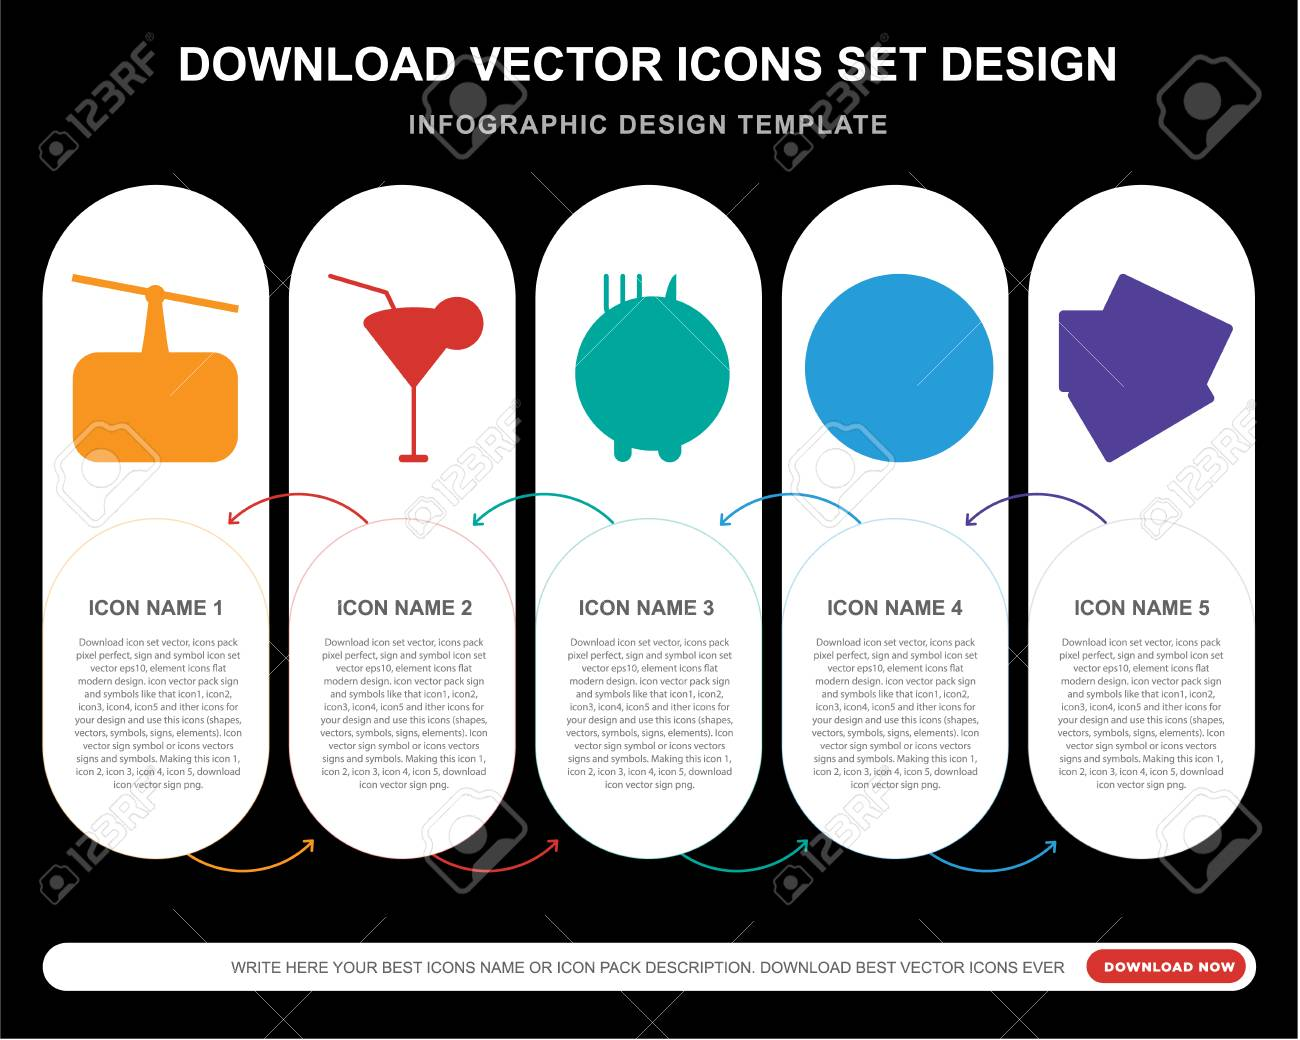 5 Vector Icons Such As Cableway Cocktail Restaurant Beach Royalty Free Cliparts Vectors And Stock Illustration Image 111886765